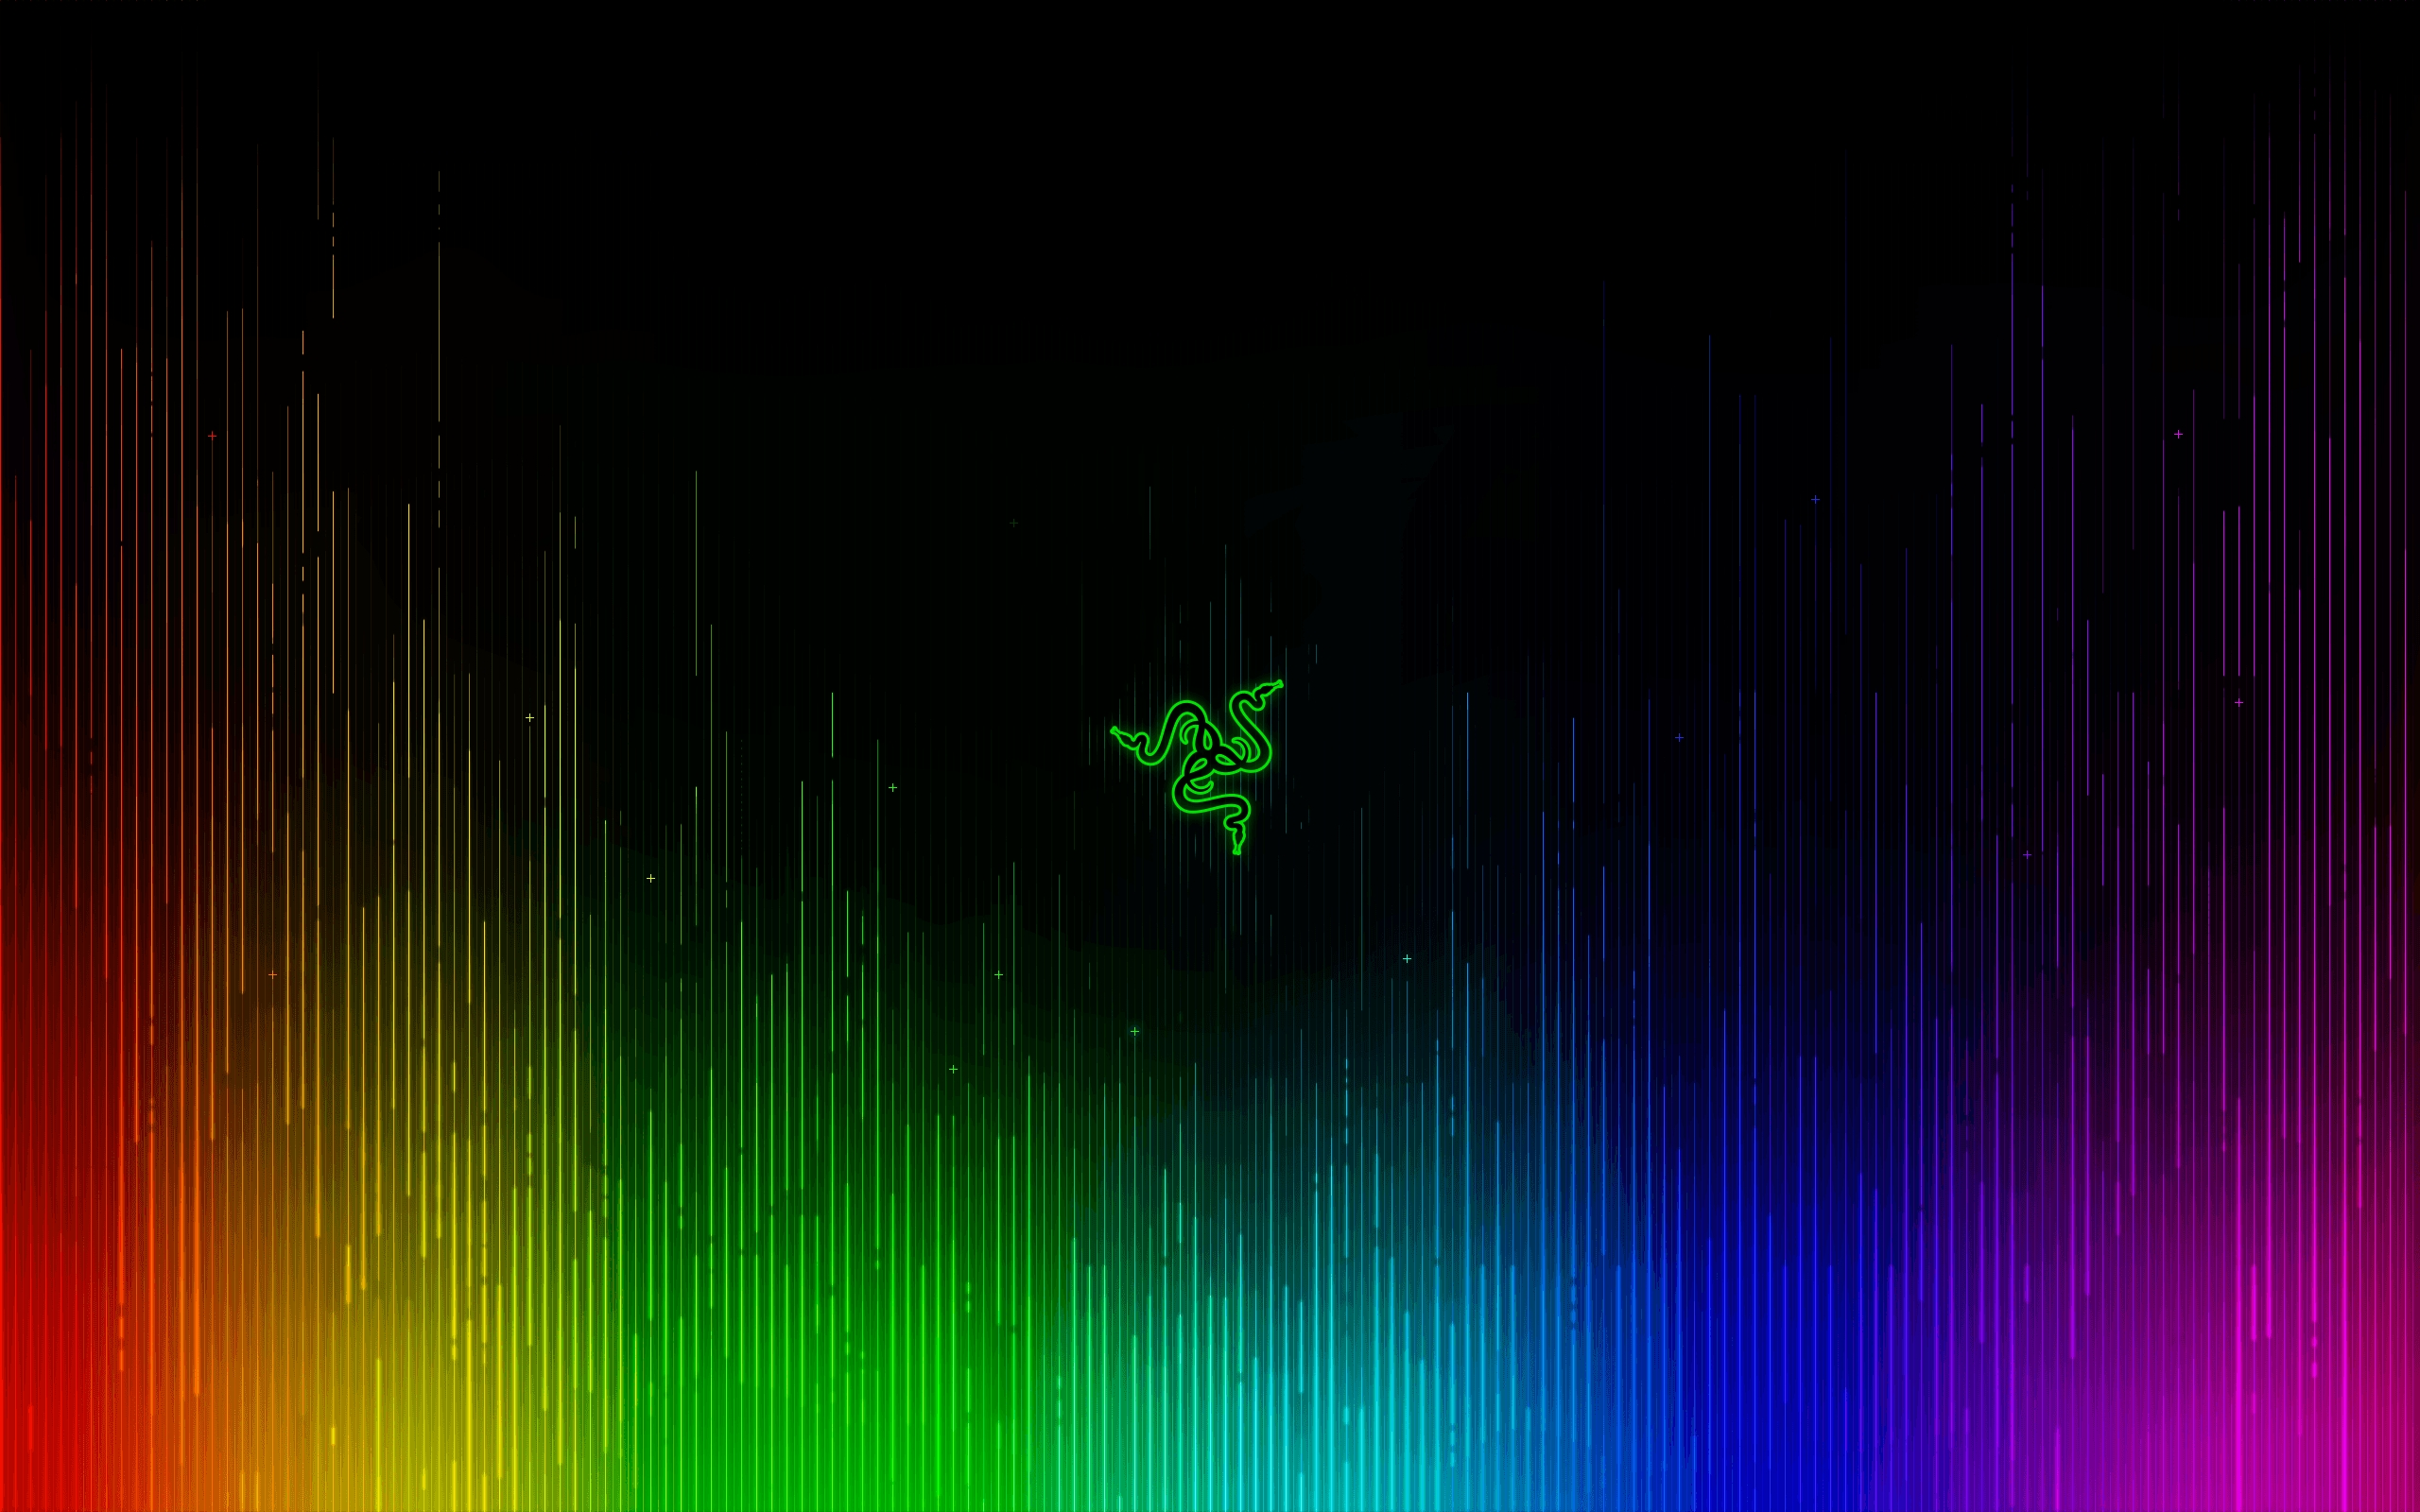 razer chroma wallpapers - wallpaper cave